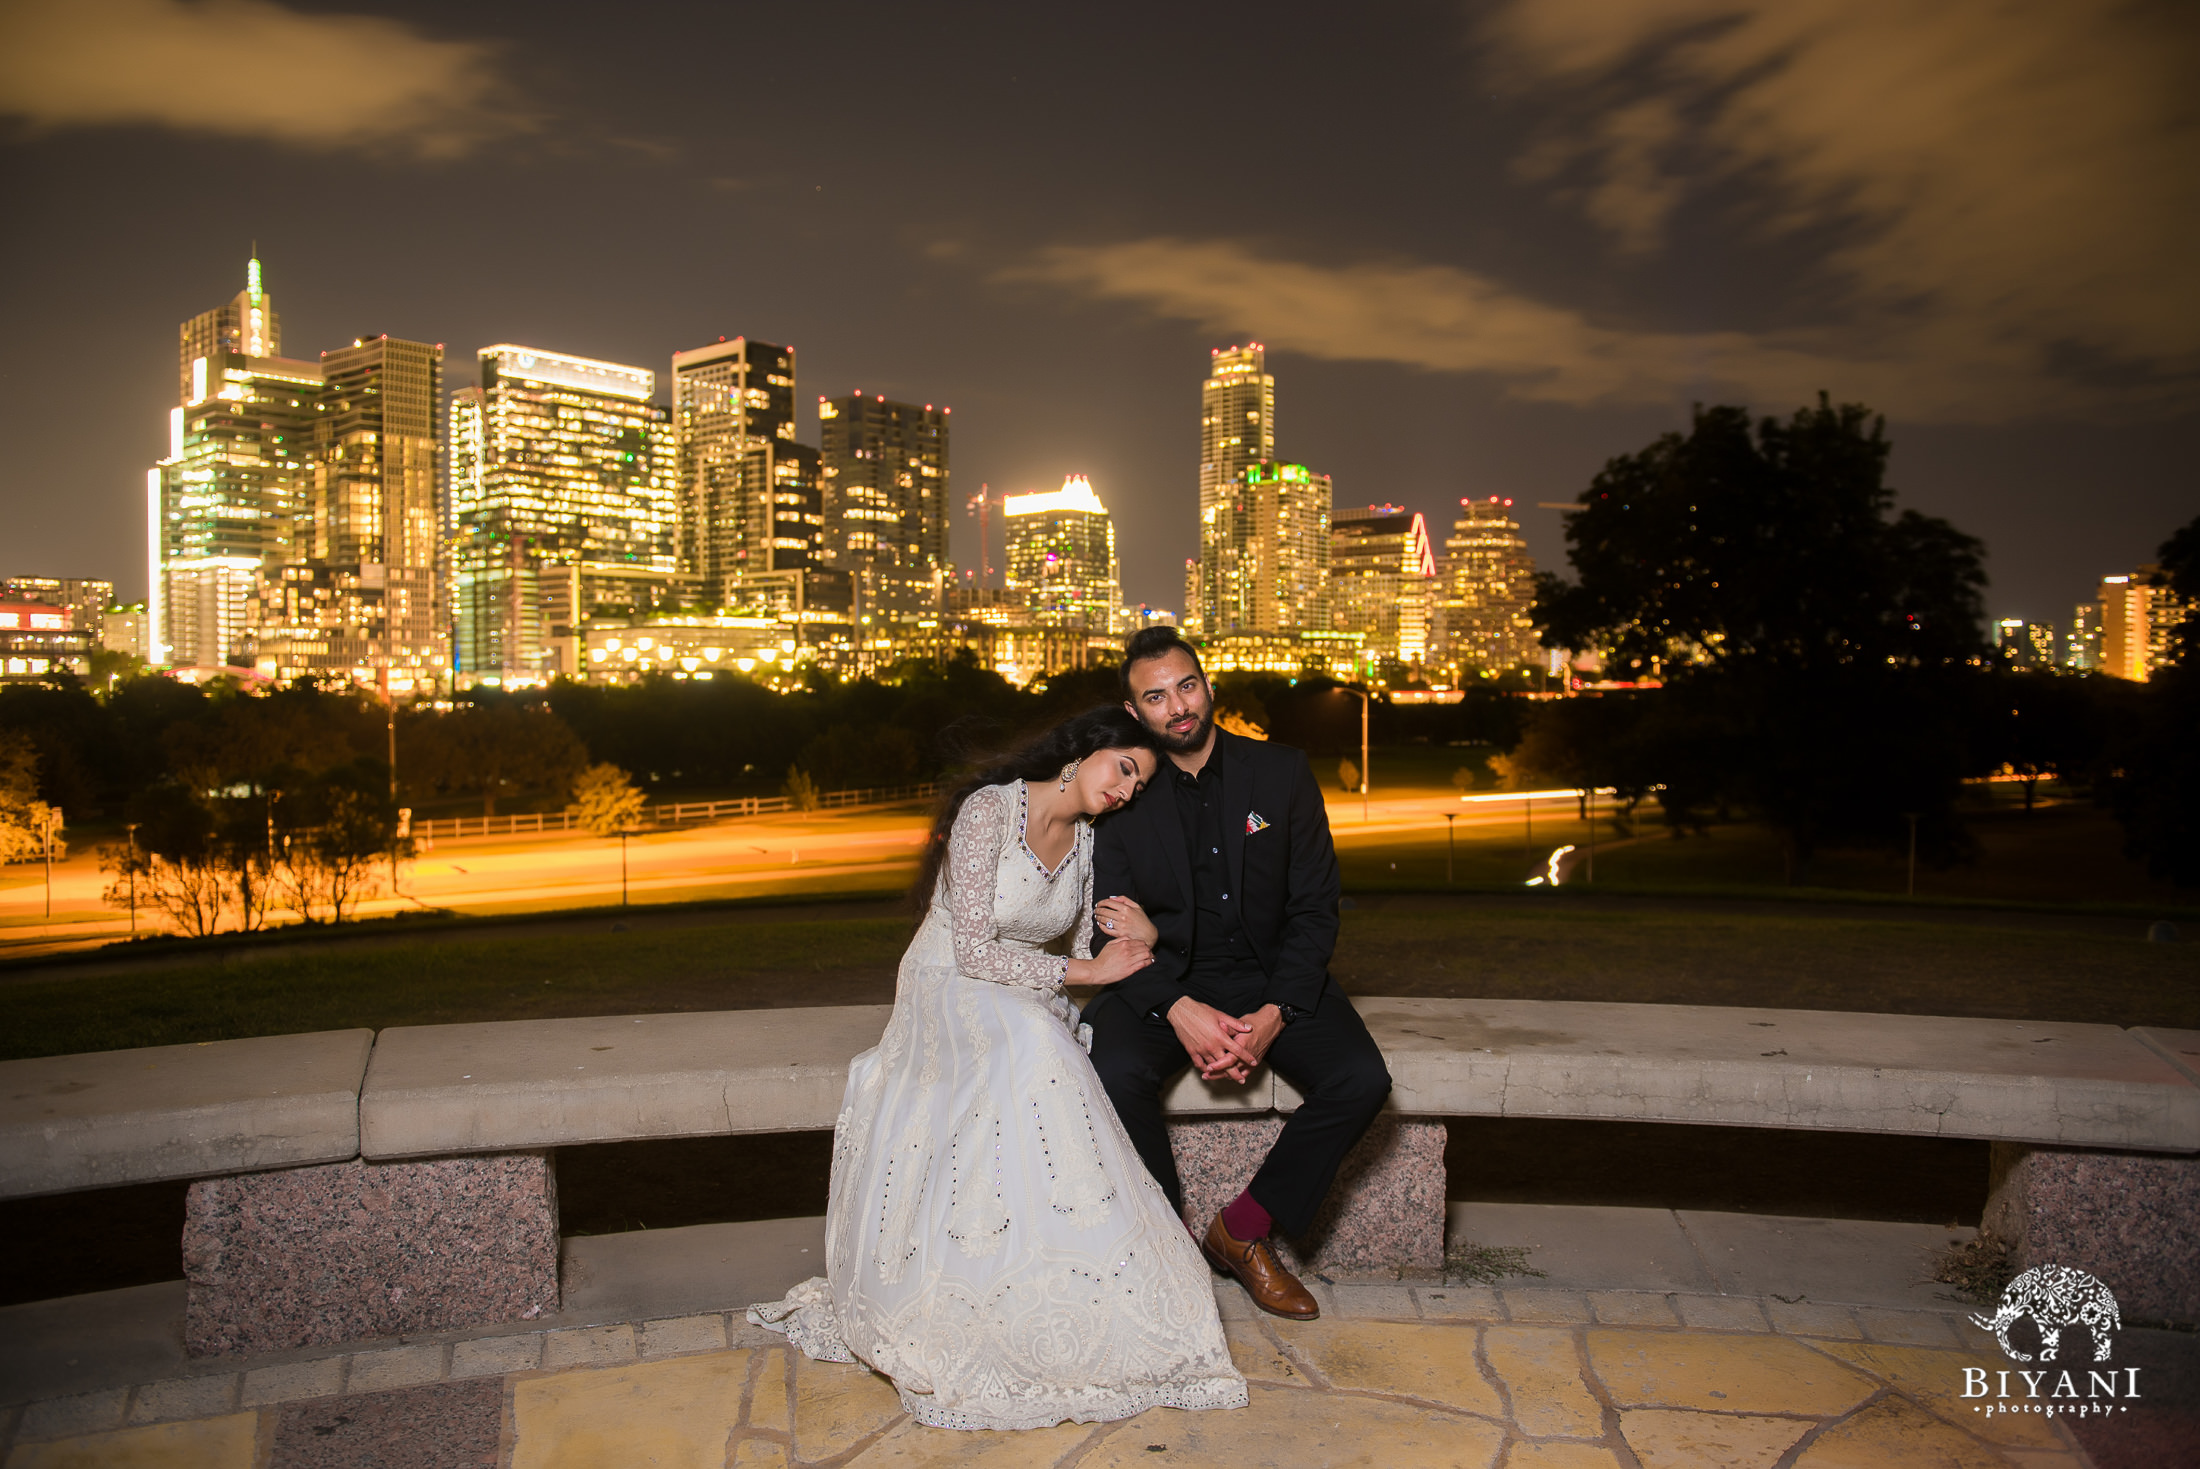 couple sitting on bench together in front of Austin city skyline during night